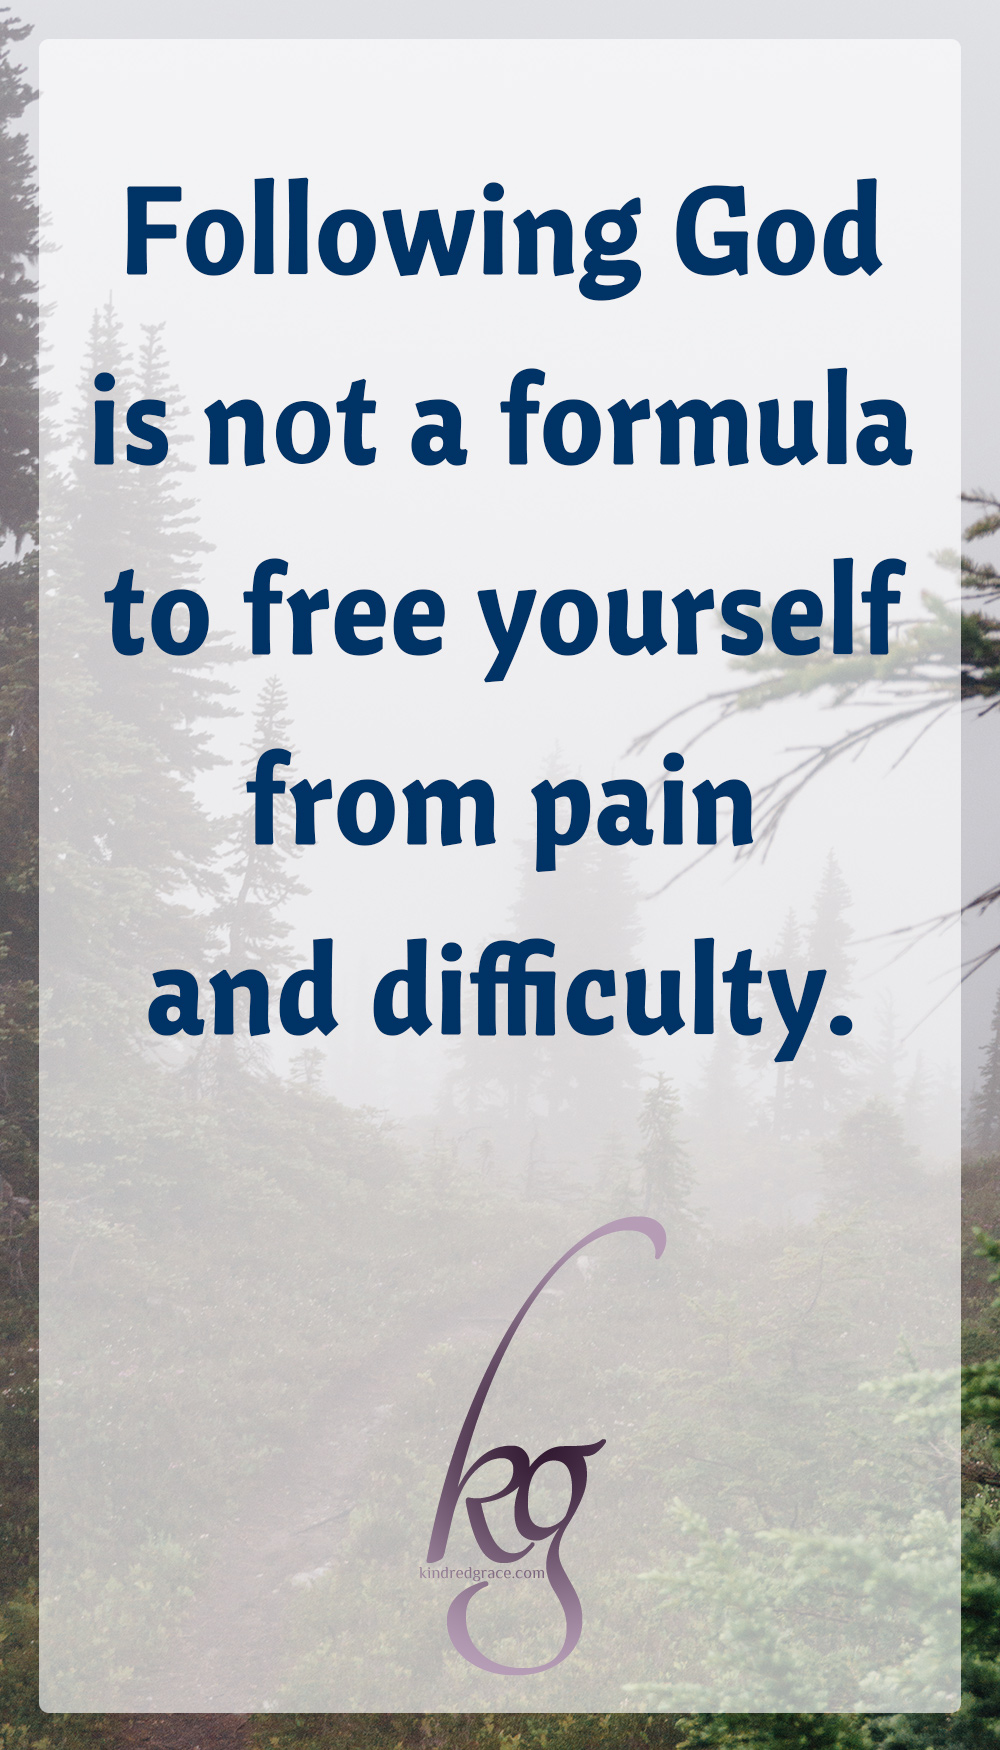 Following God is not a formula to free yourself from pain and difficulty. via @KindredGrace